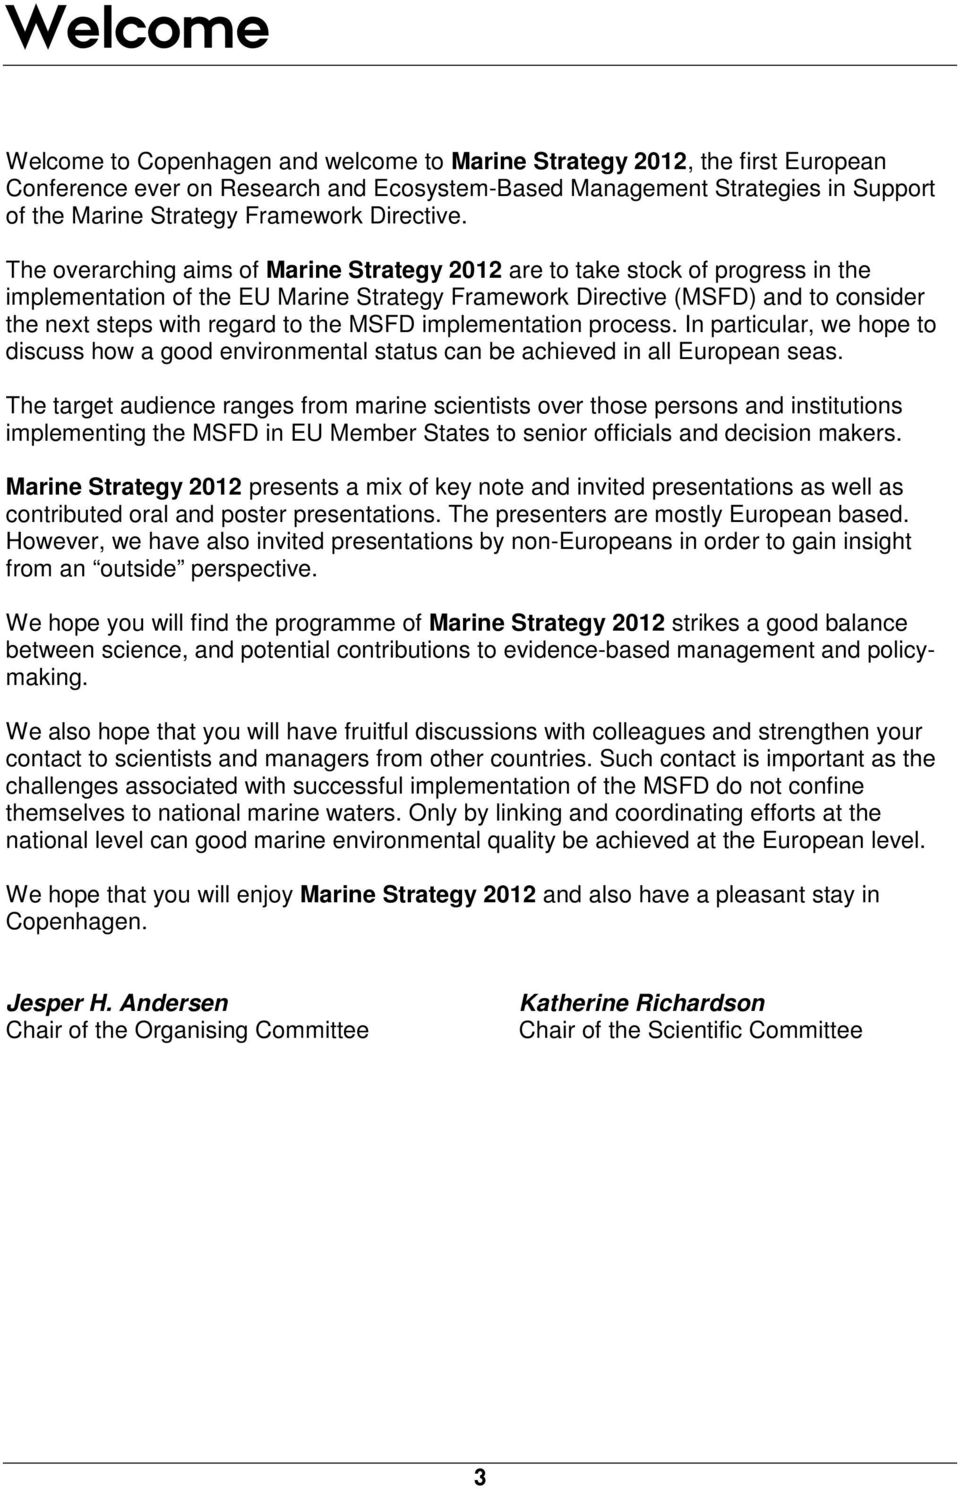 The overarching aims of Marine Strategy 2012 are to take stock of progress in the implementation of the EU Marine Strategy Framework Directive (MSFD) and to consider the next steps with regard to the